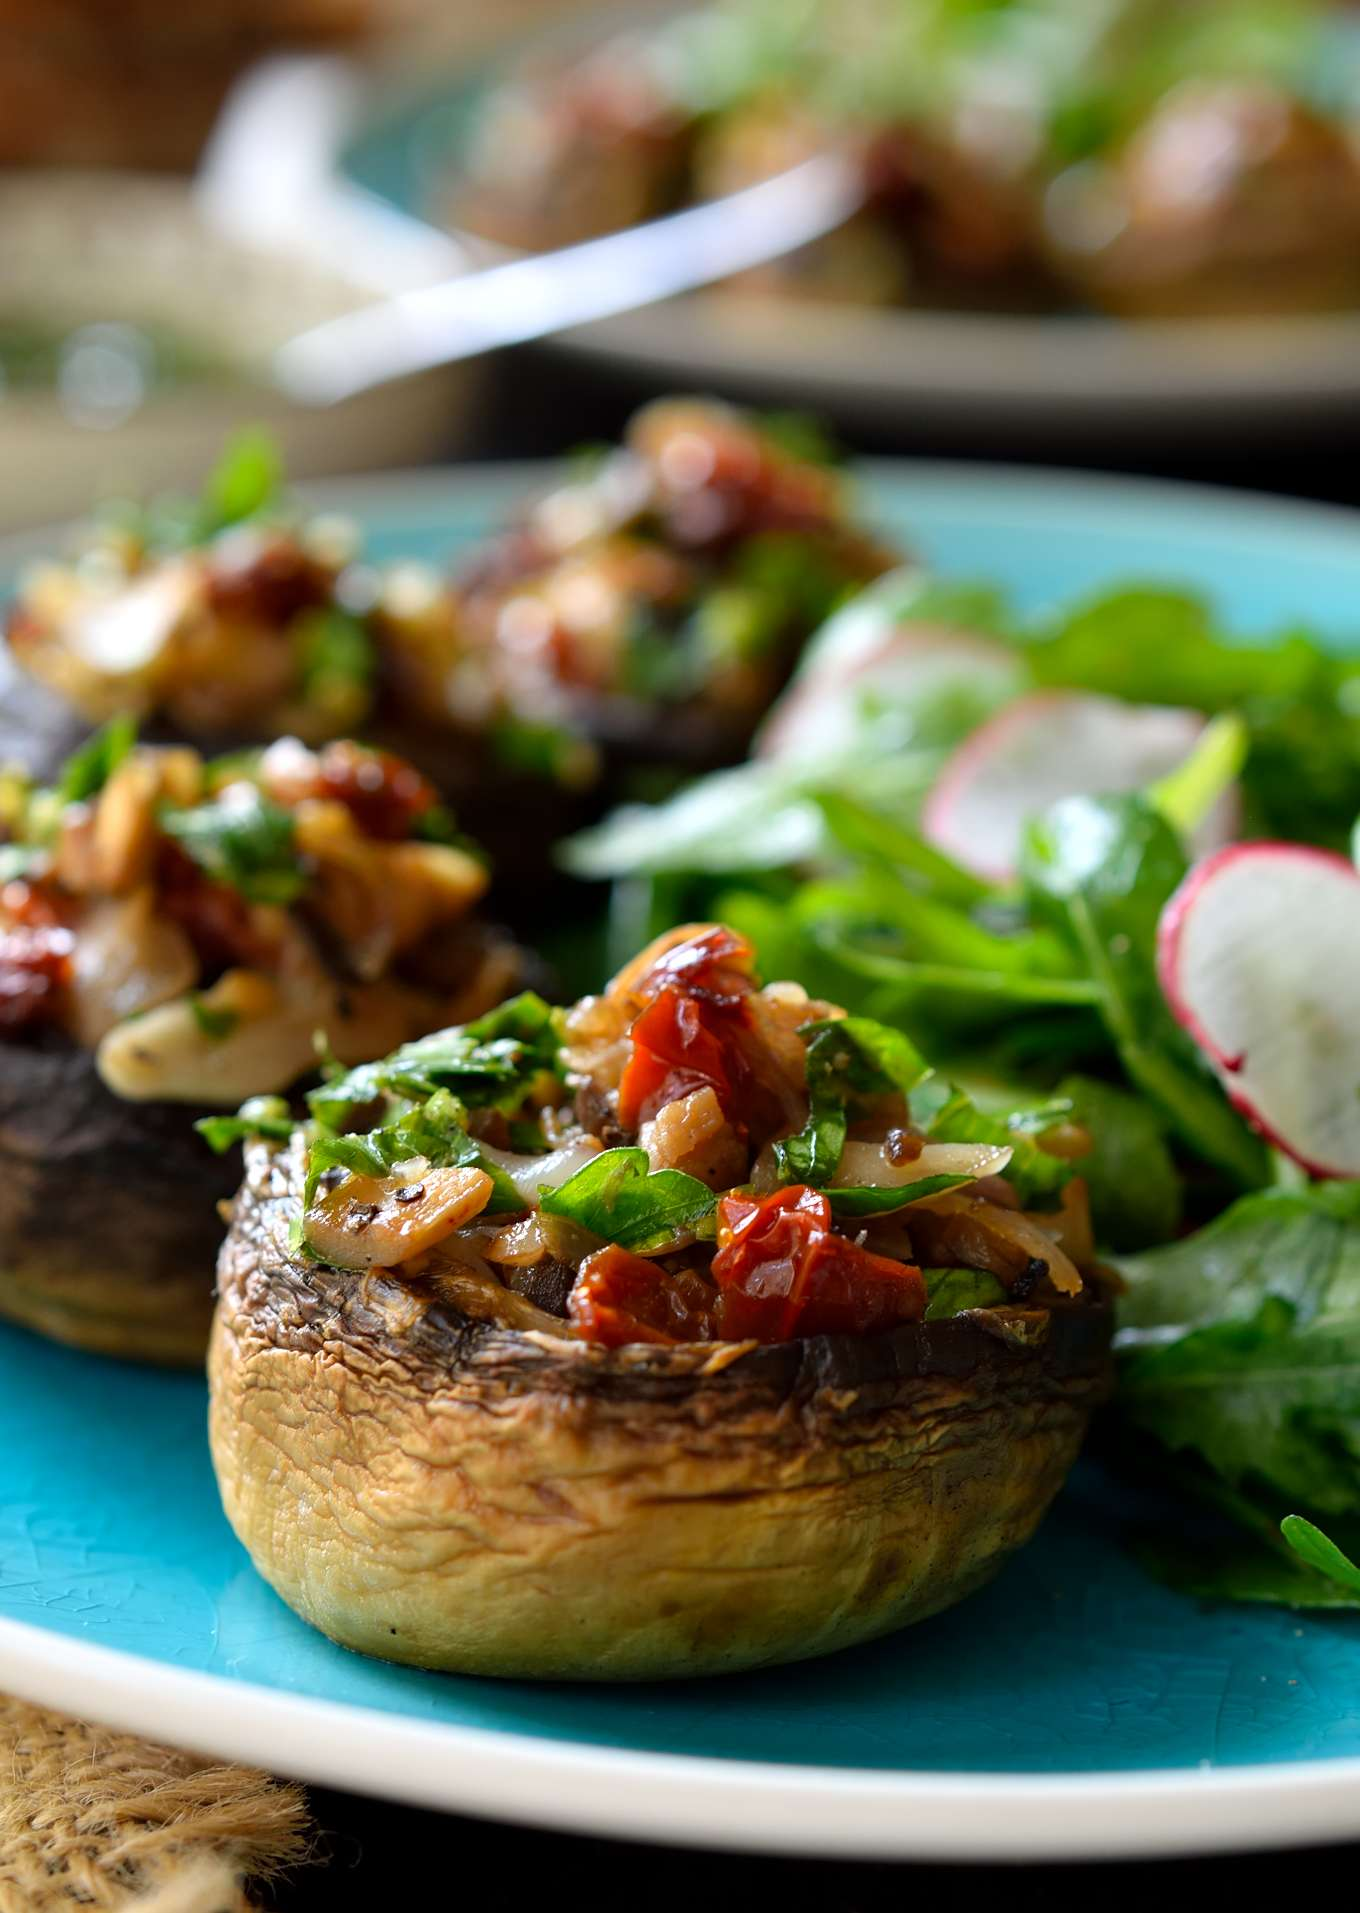 Vegan stuffed mushrooms are easy to make and packed with fresh herb-y, garlicky, citrus-y deliciousness. These little guys are great served as party finger food, a starter or a light main dish when paired with a fresh salad and crusty bread.